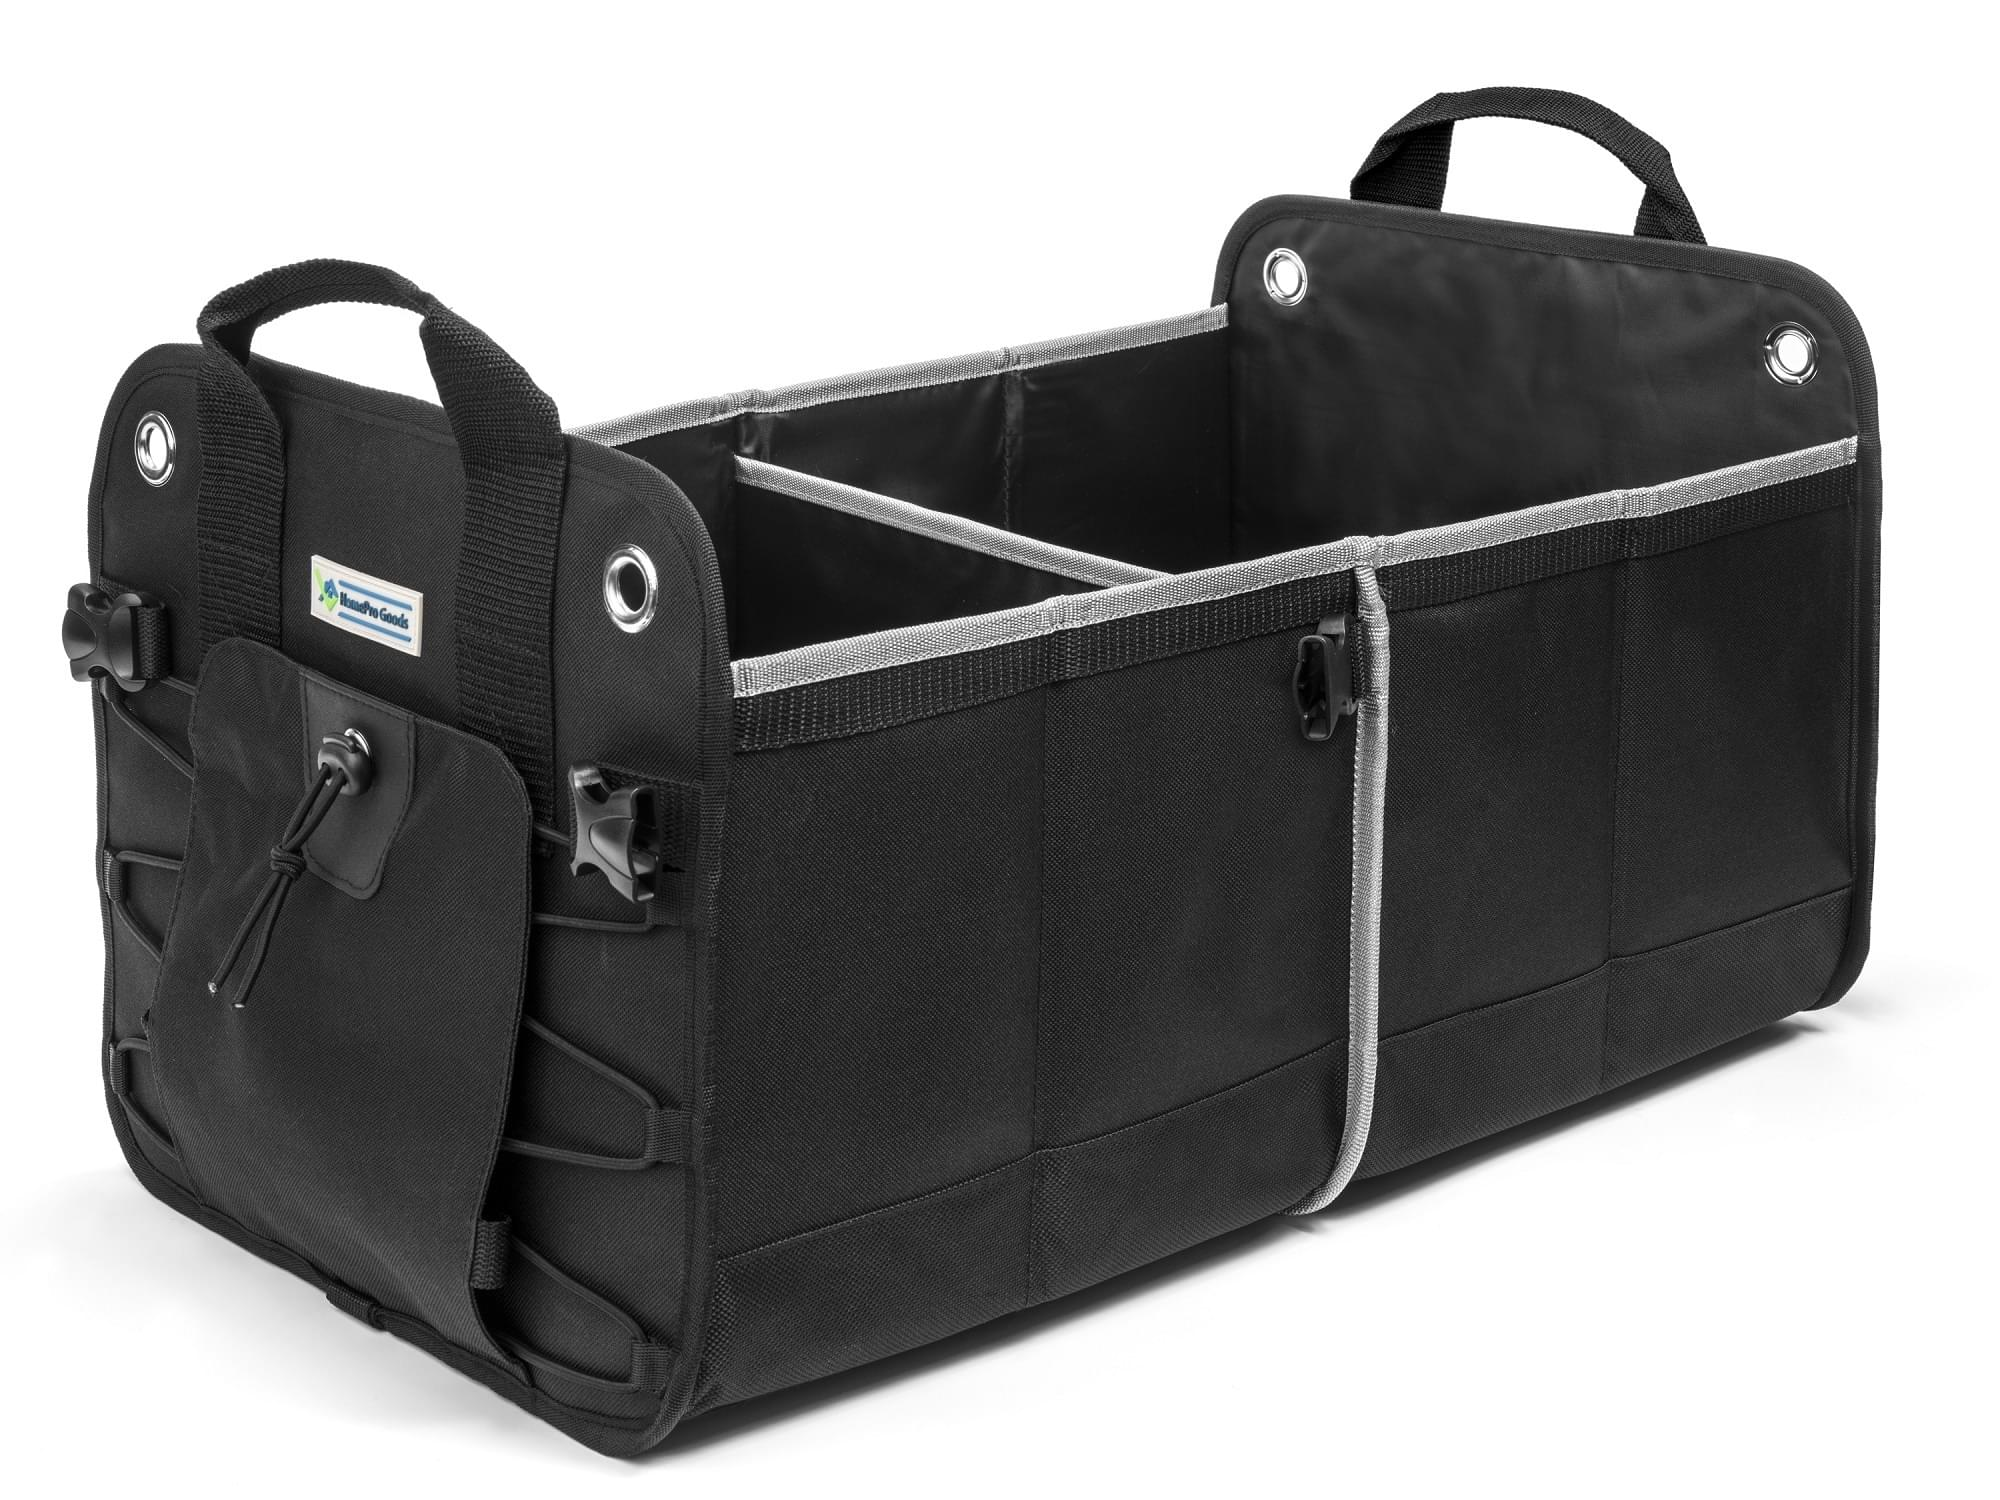 Large Trunk Organizer shown on white background